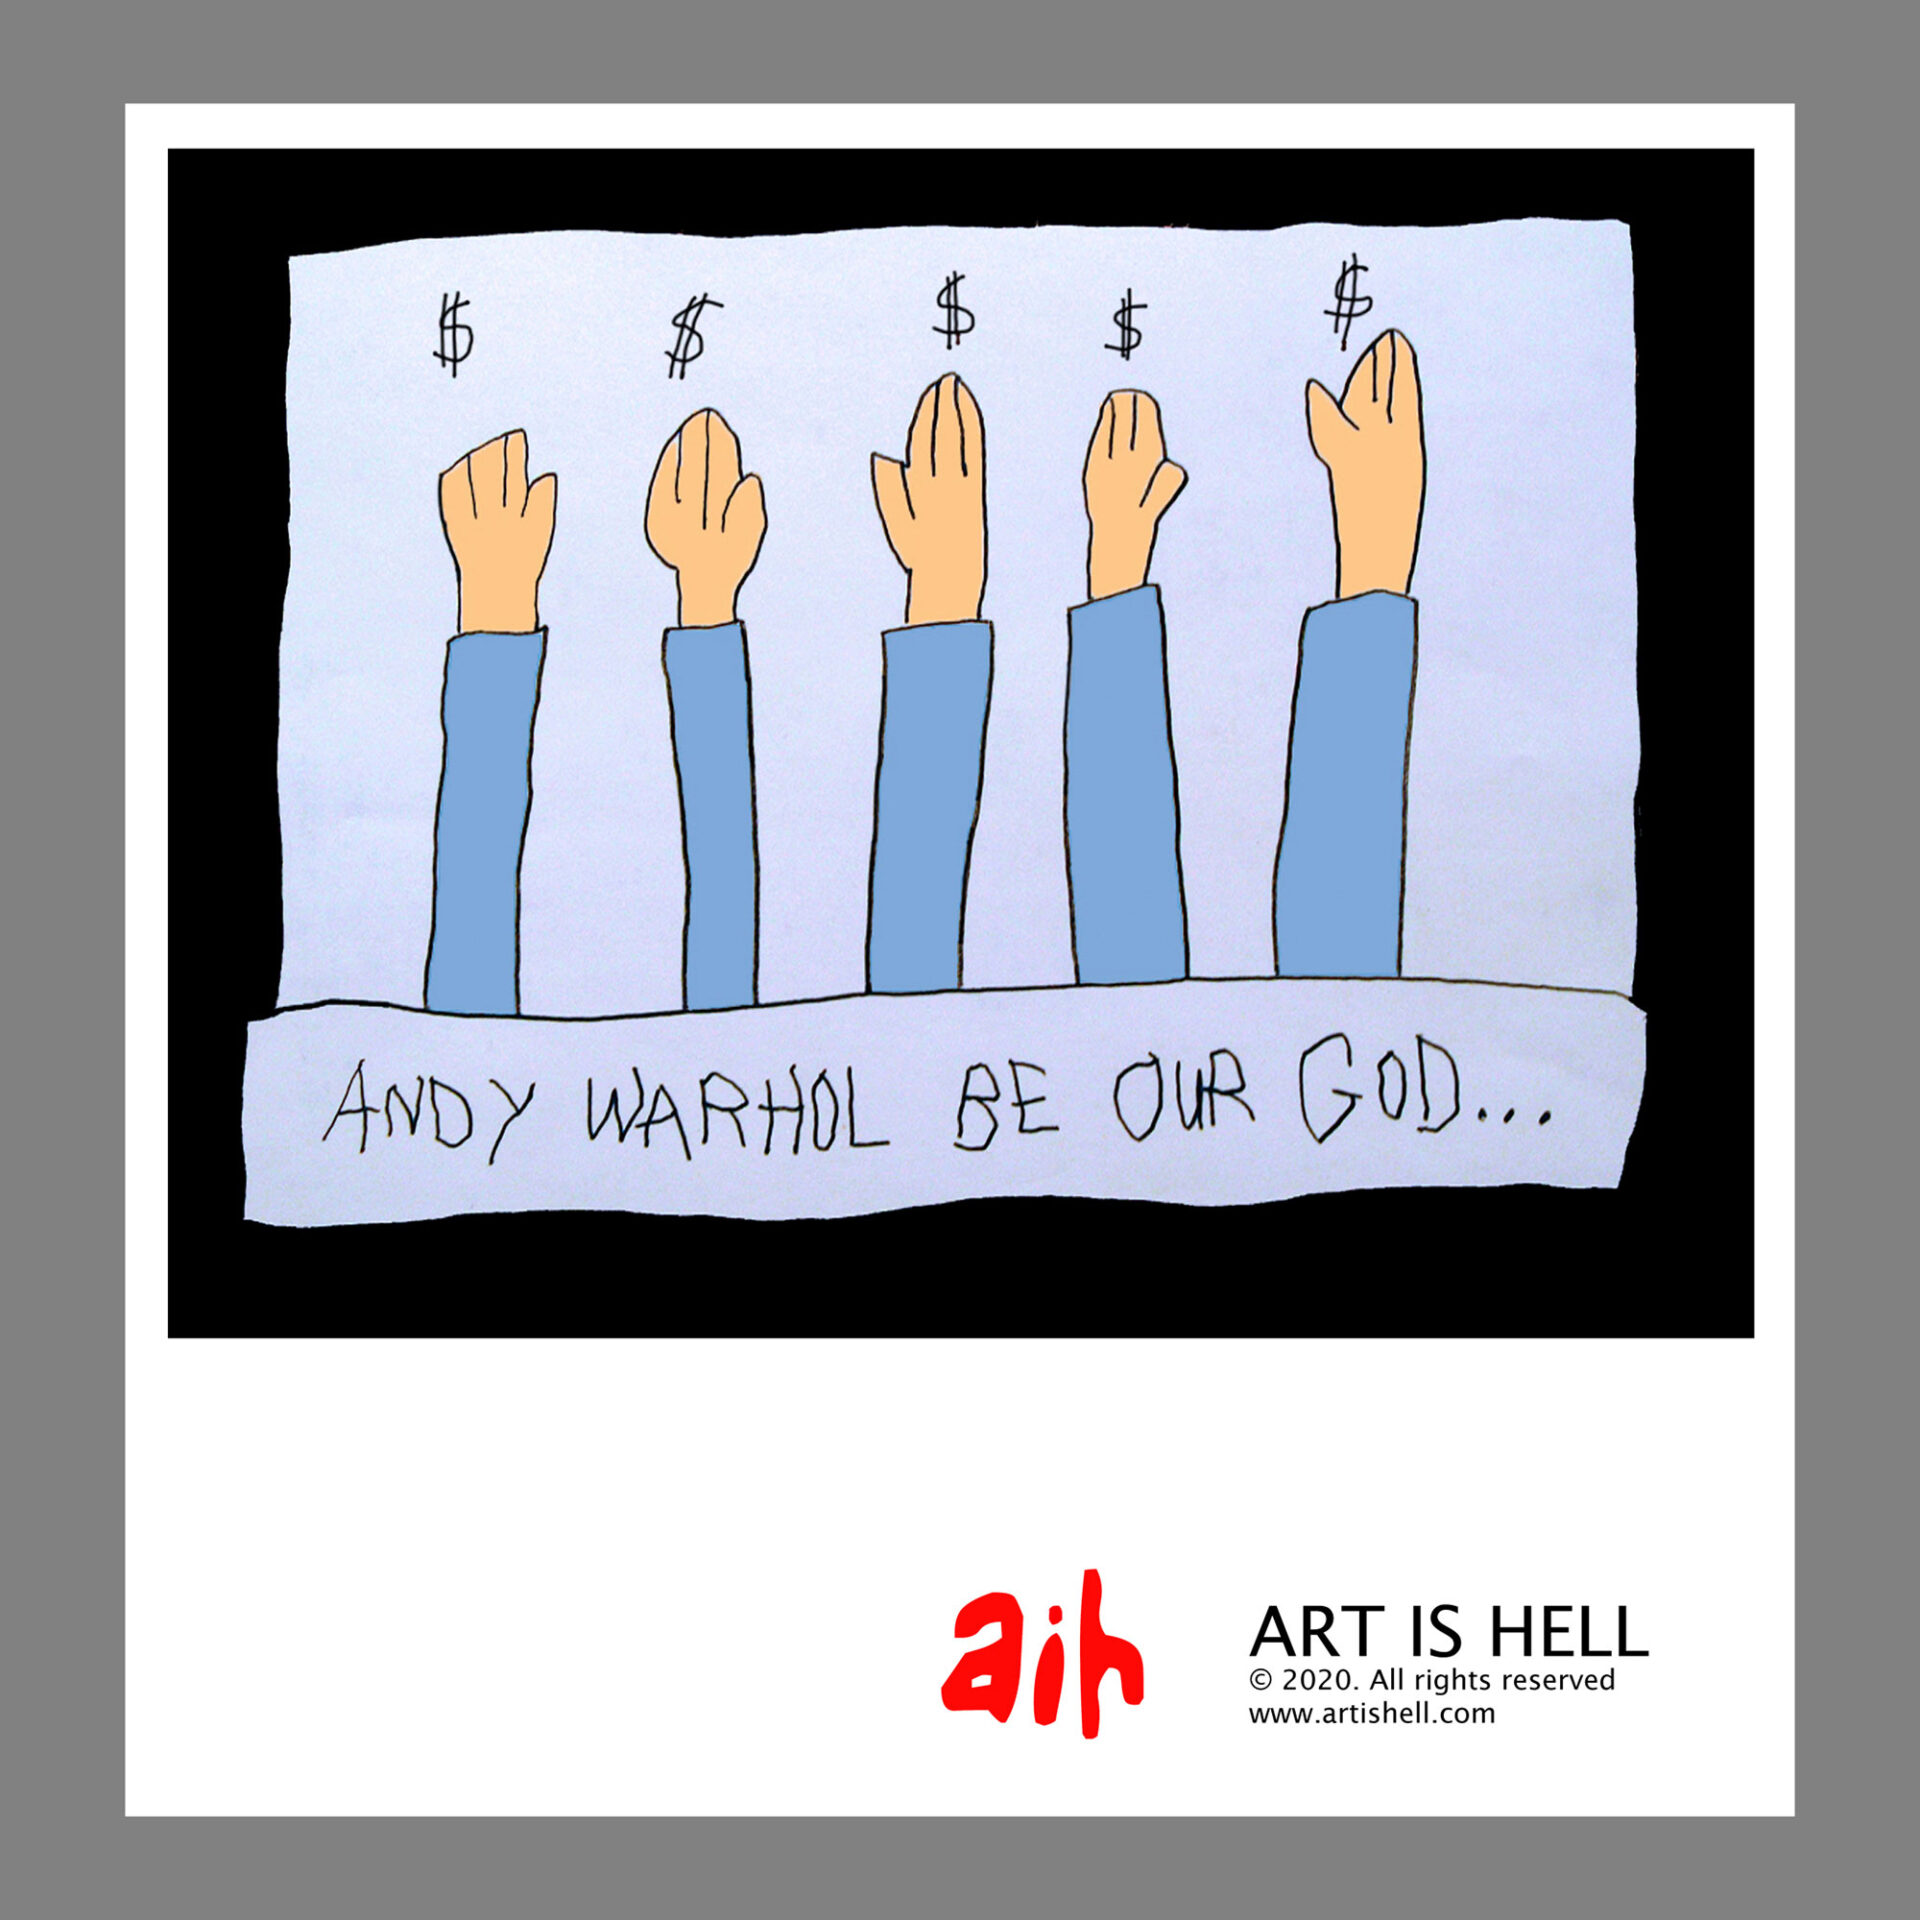 Andy Warhol Be Our God…. 24 x 20 inch poster. CA$ 30.00